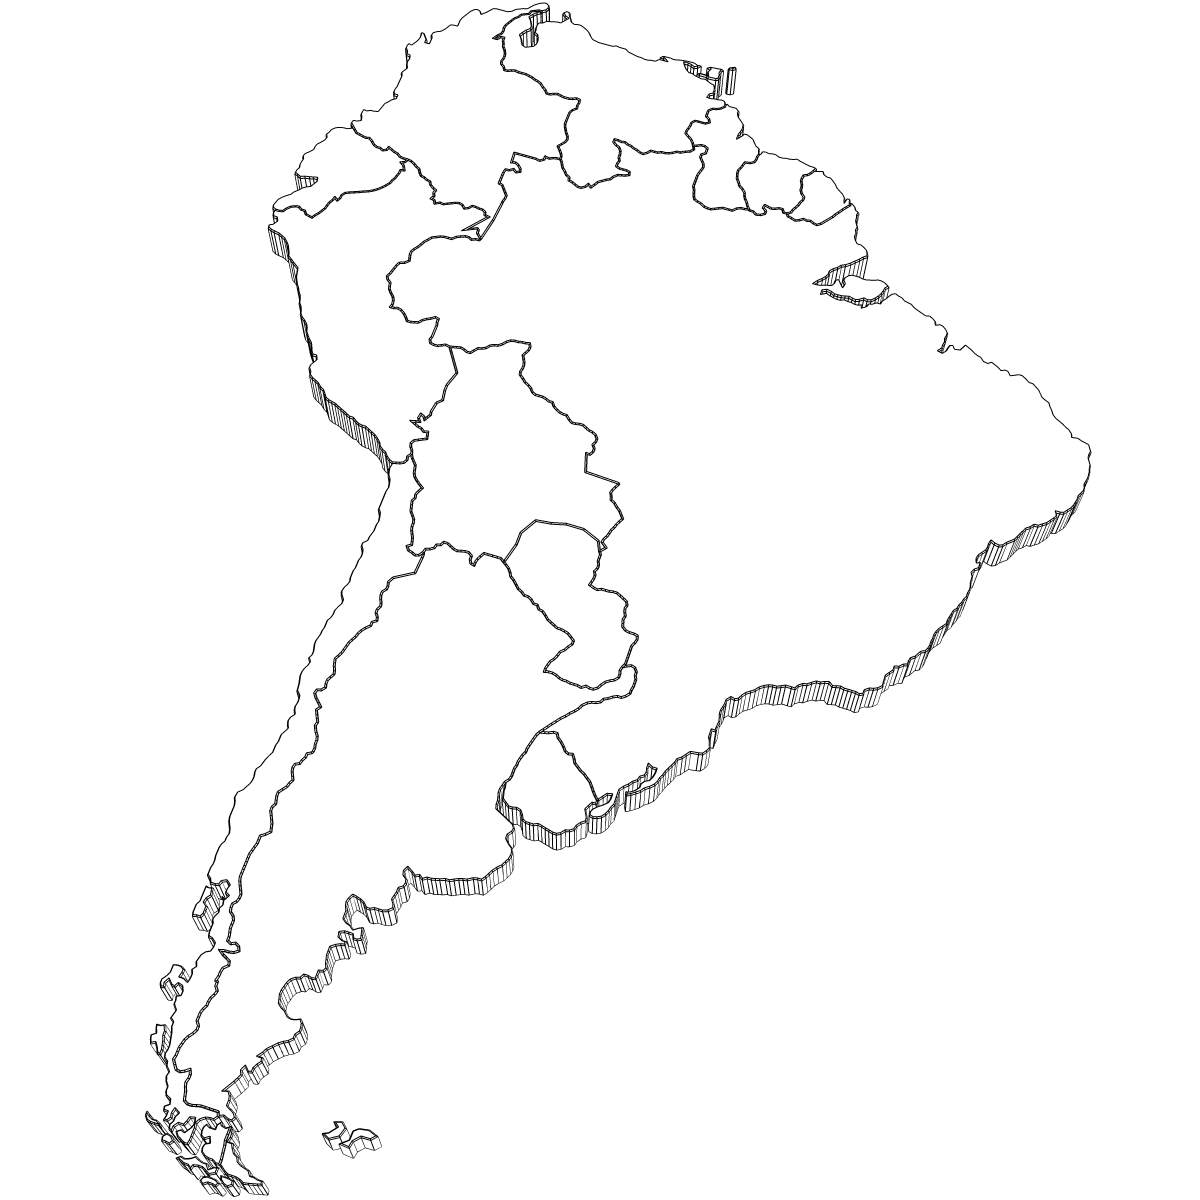 South America Coloring Page At Getdrawings Com Free For Personal